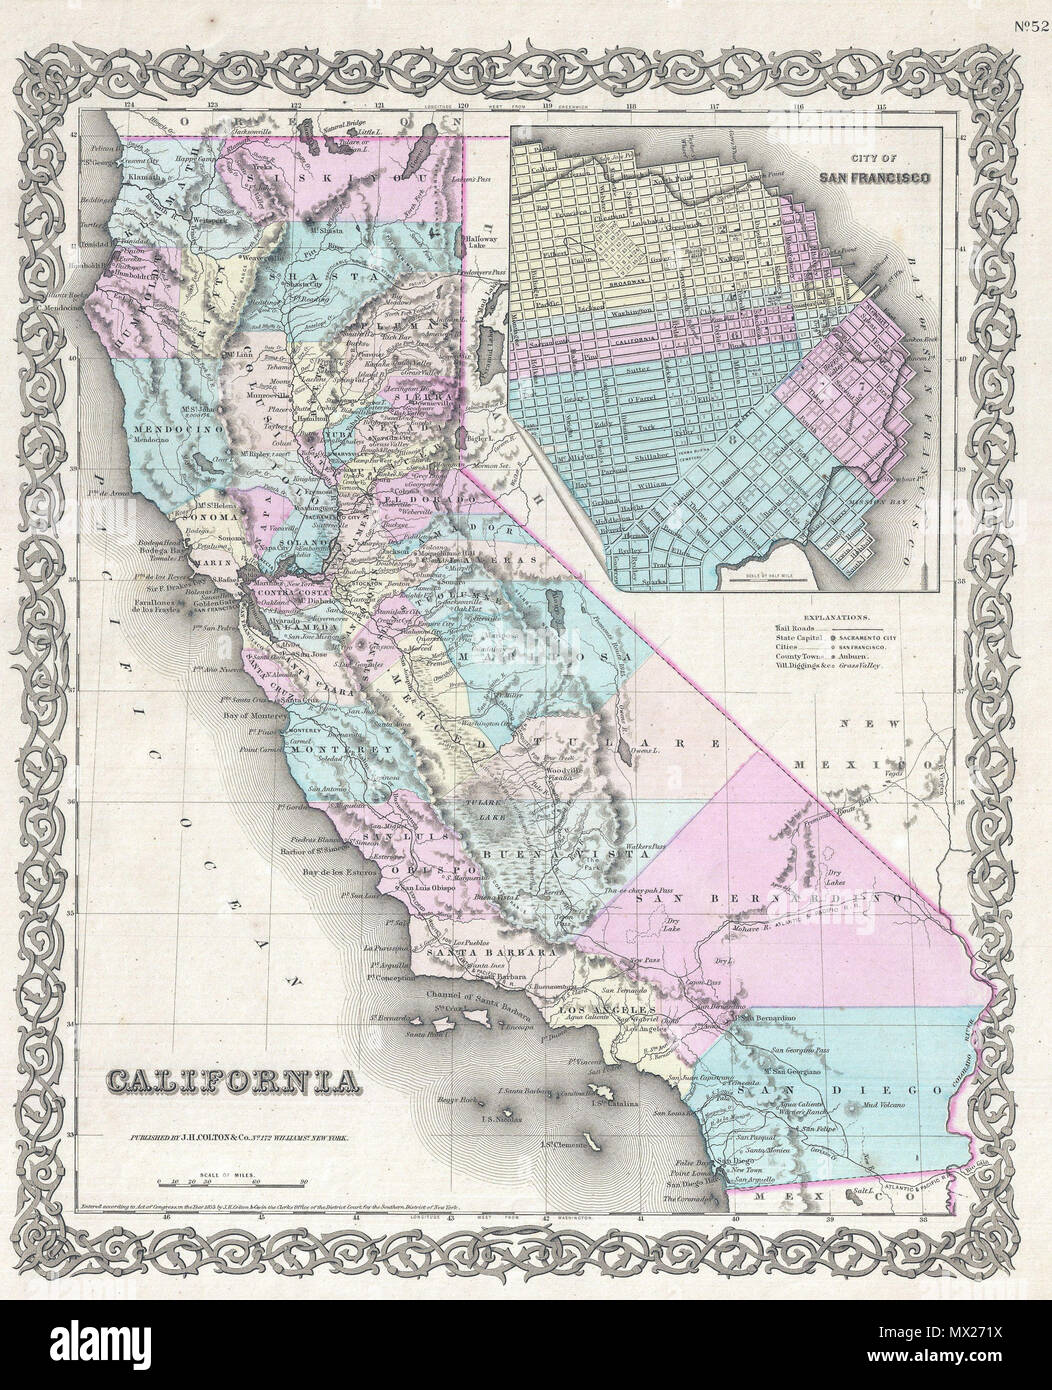 . California. City of San Francisco.  English: Issued roughly six years after the 1849 California Gold Rush, this is a beautiful 1855 first edition first state example of Colton's map of California. Colton's California with its San Francisco inset is one of the rarest and most desirable of all Colton atlas maps as it beautifully illustrates the rapid development throughout the state that followed in the wake of the Sutter's Mill discovery. Like most of Colton's state maps, this map was derived from an earlier wall map of North America produced by Colton and D. Griffing Johnson. Covers the enti - Stock Image